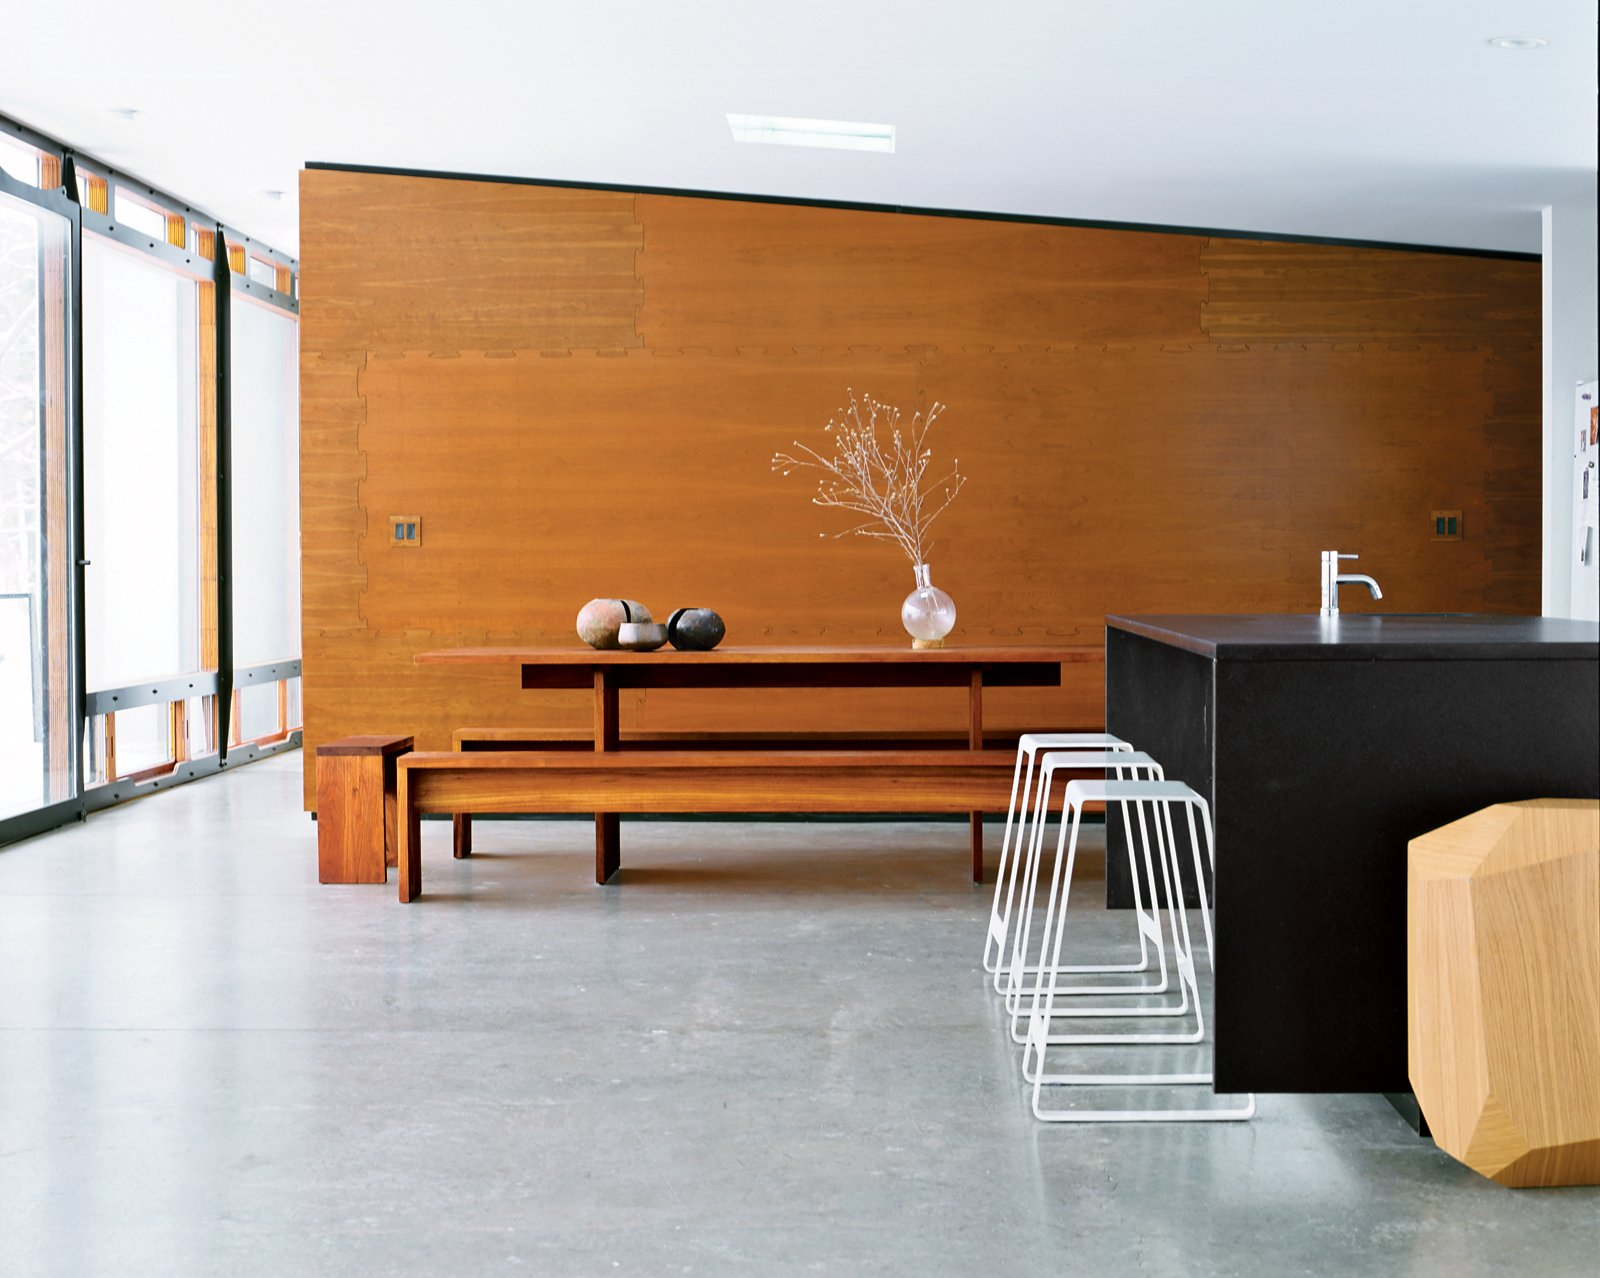 The table in the dining area was found in Venice, California, and the geometric table is a prototype by Arik Levy. A Hybrid Prefab Home in Upstate New York - Photo 5 of 12